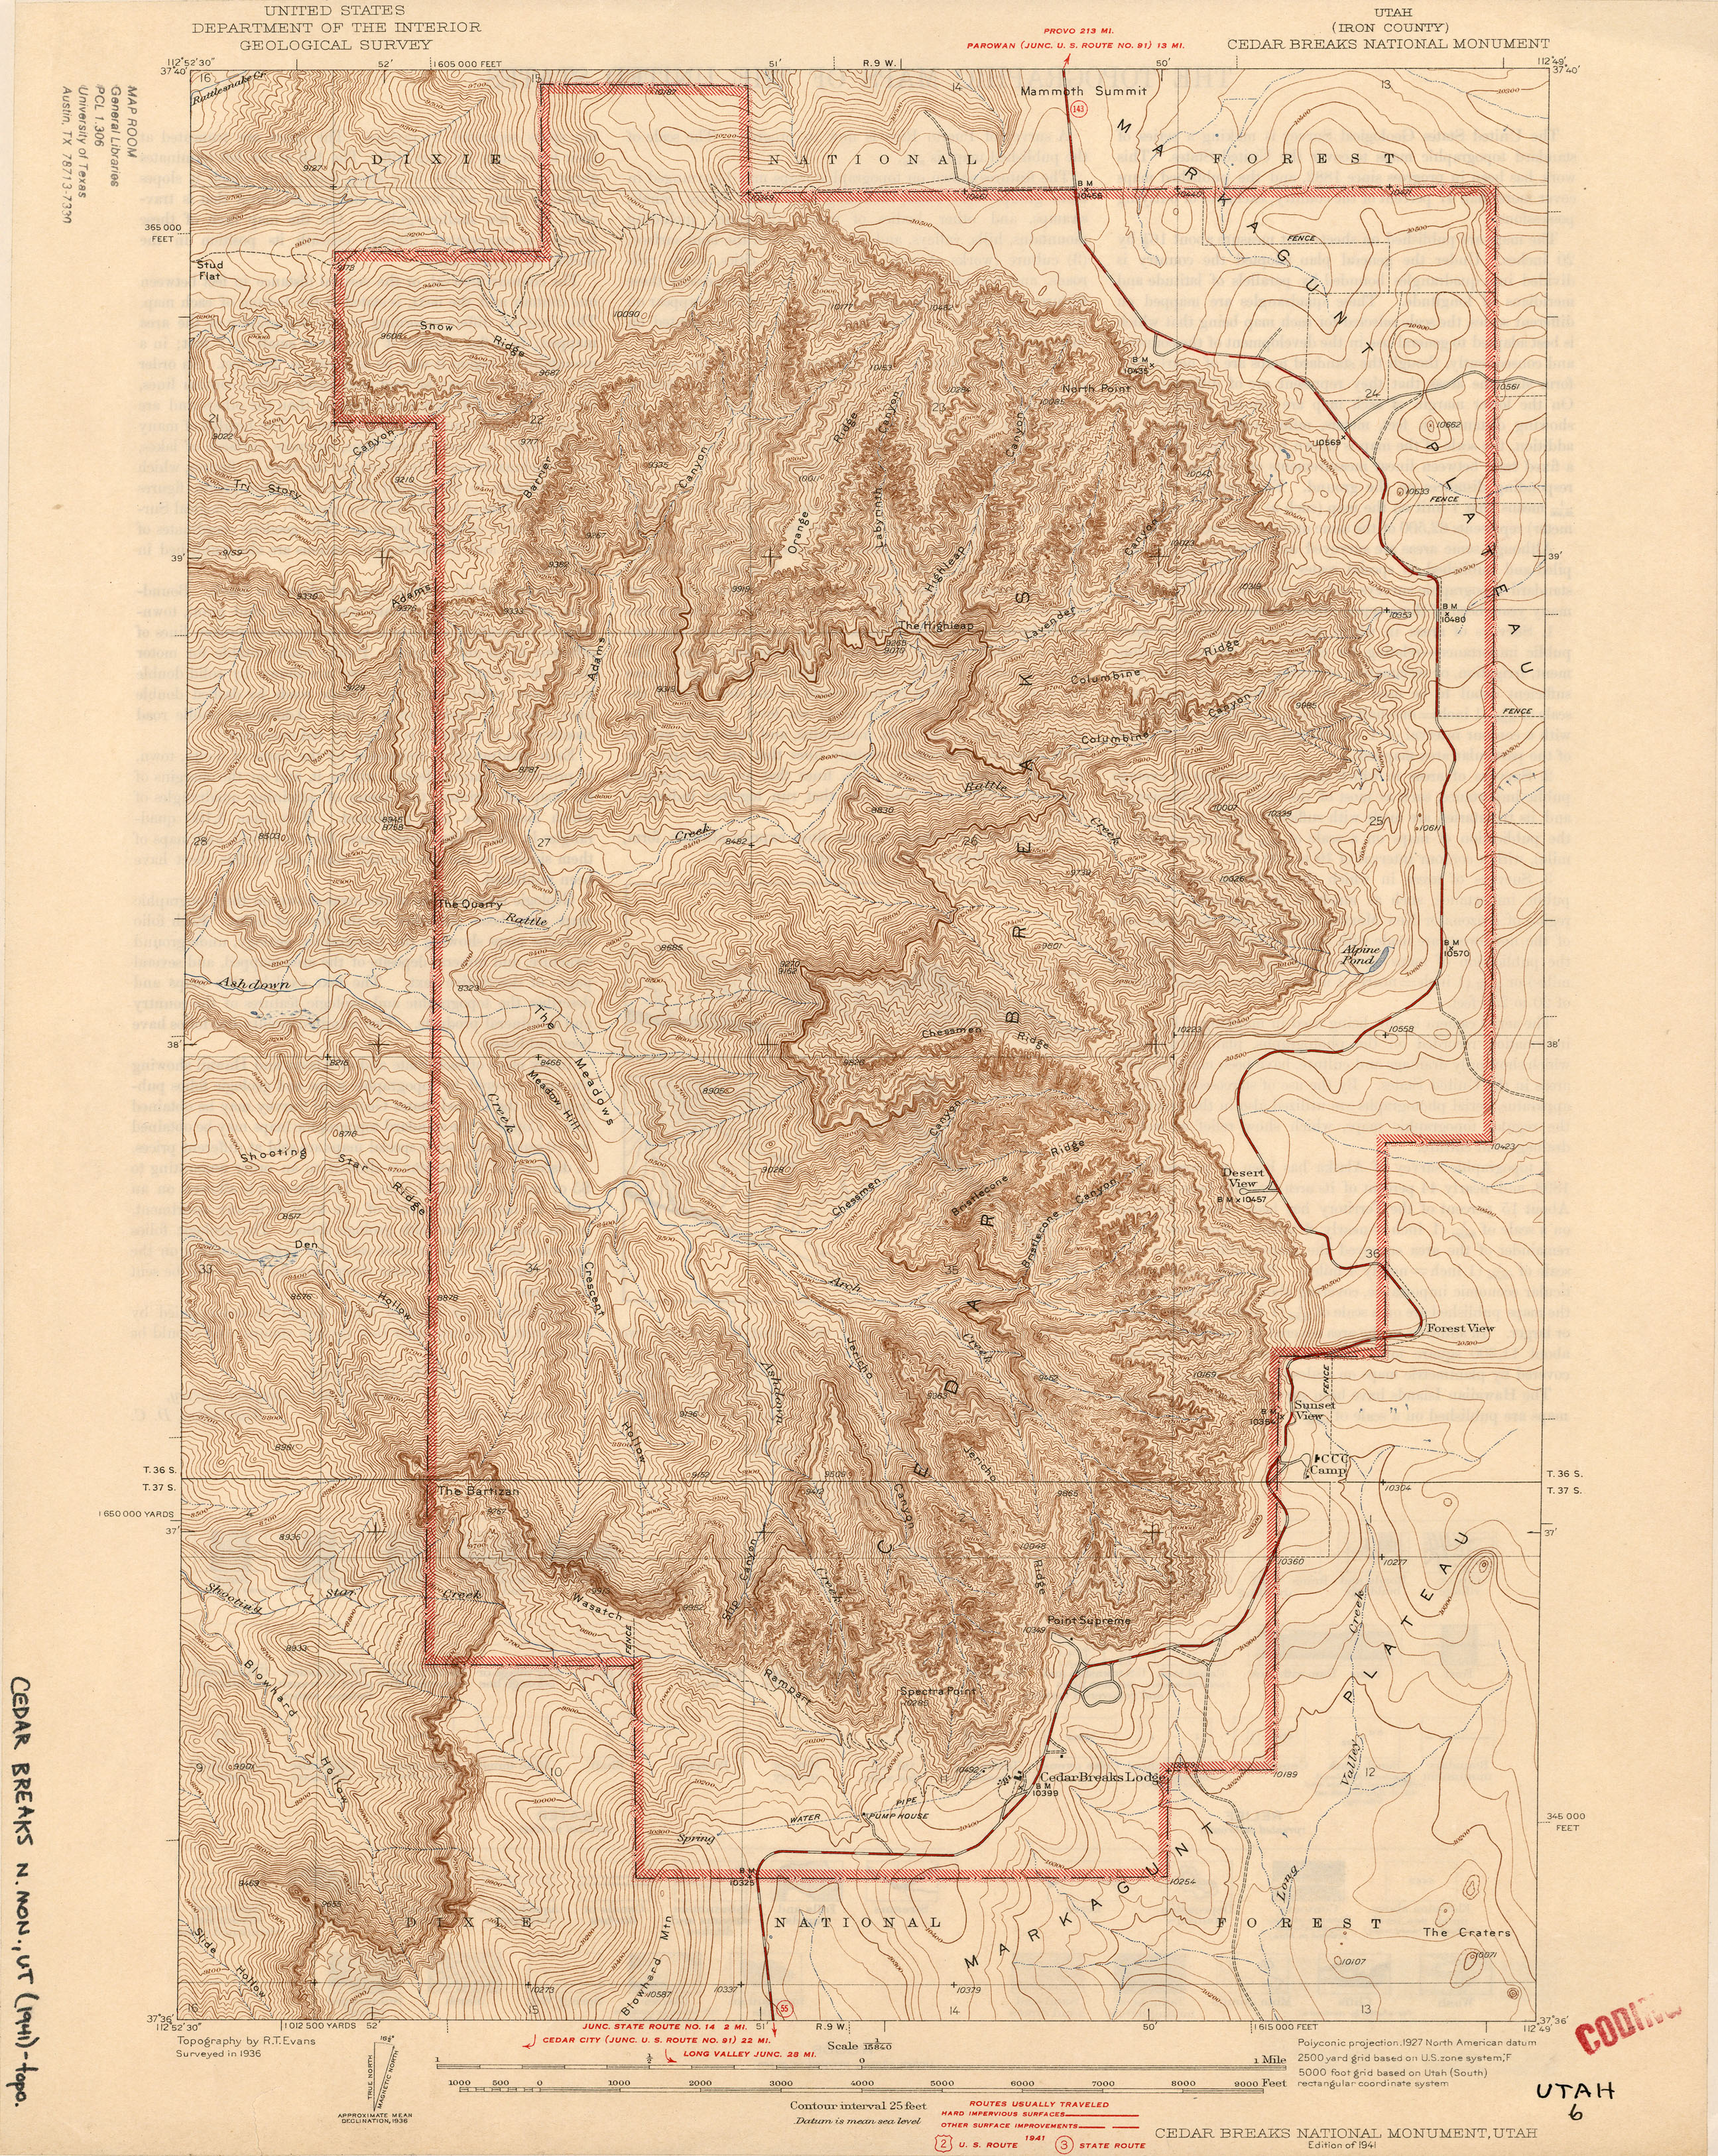 Utah Historical Topographic Maps - Perry-Castañeda Map Collection ...